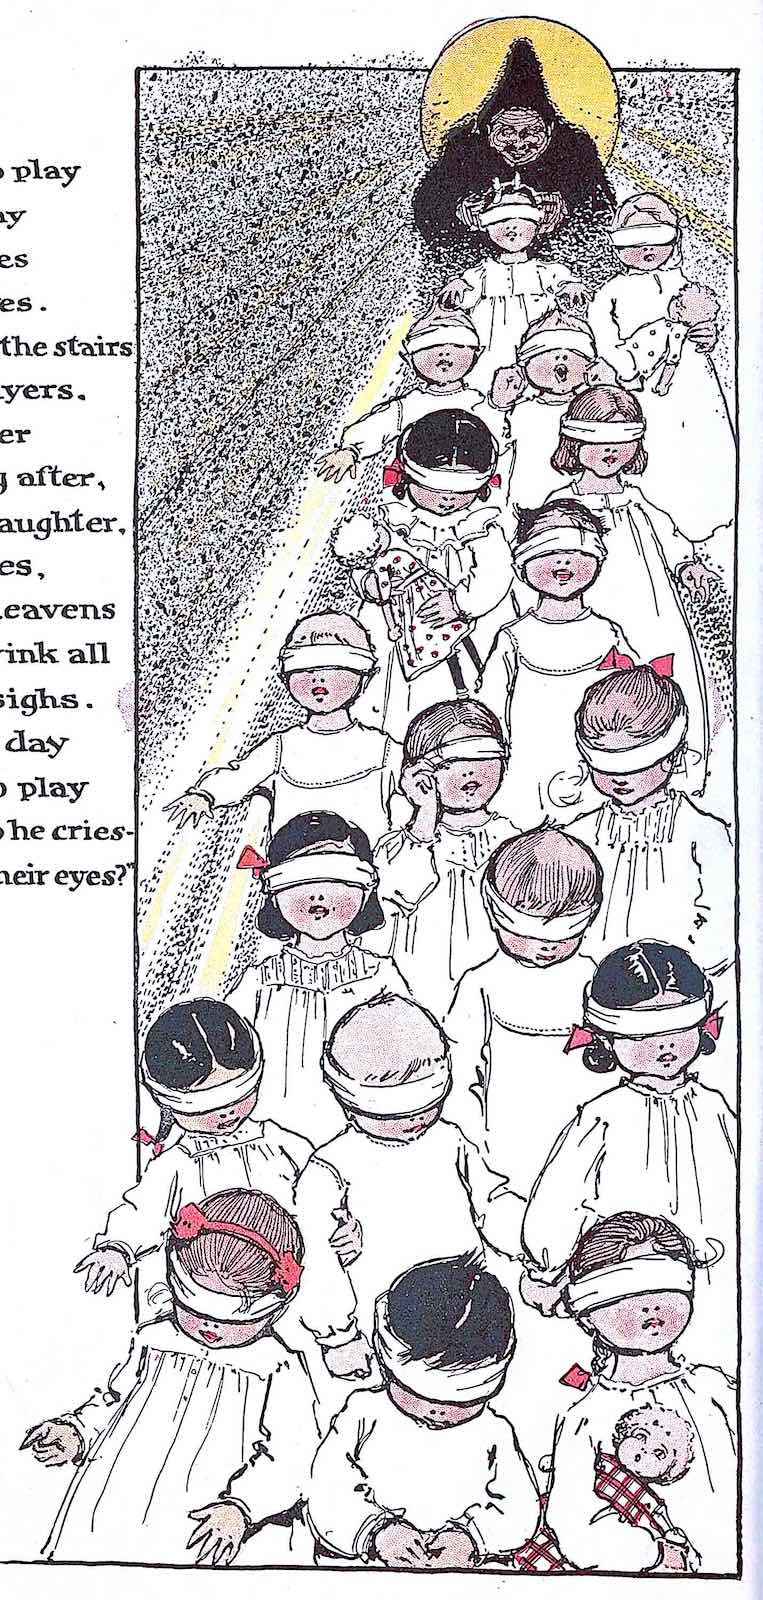 a Caroline Goodwin illustration 1901, of a blindfolded procession of children